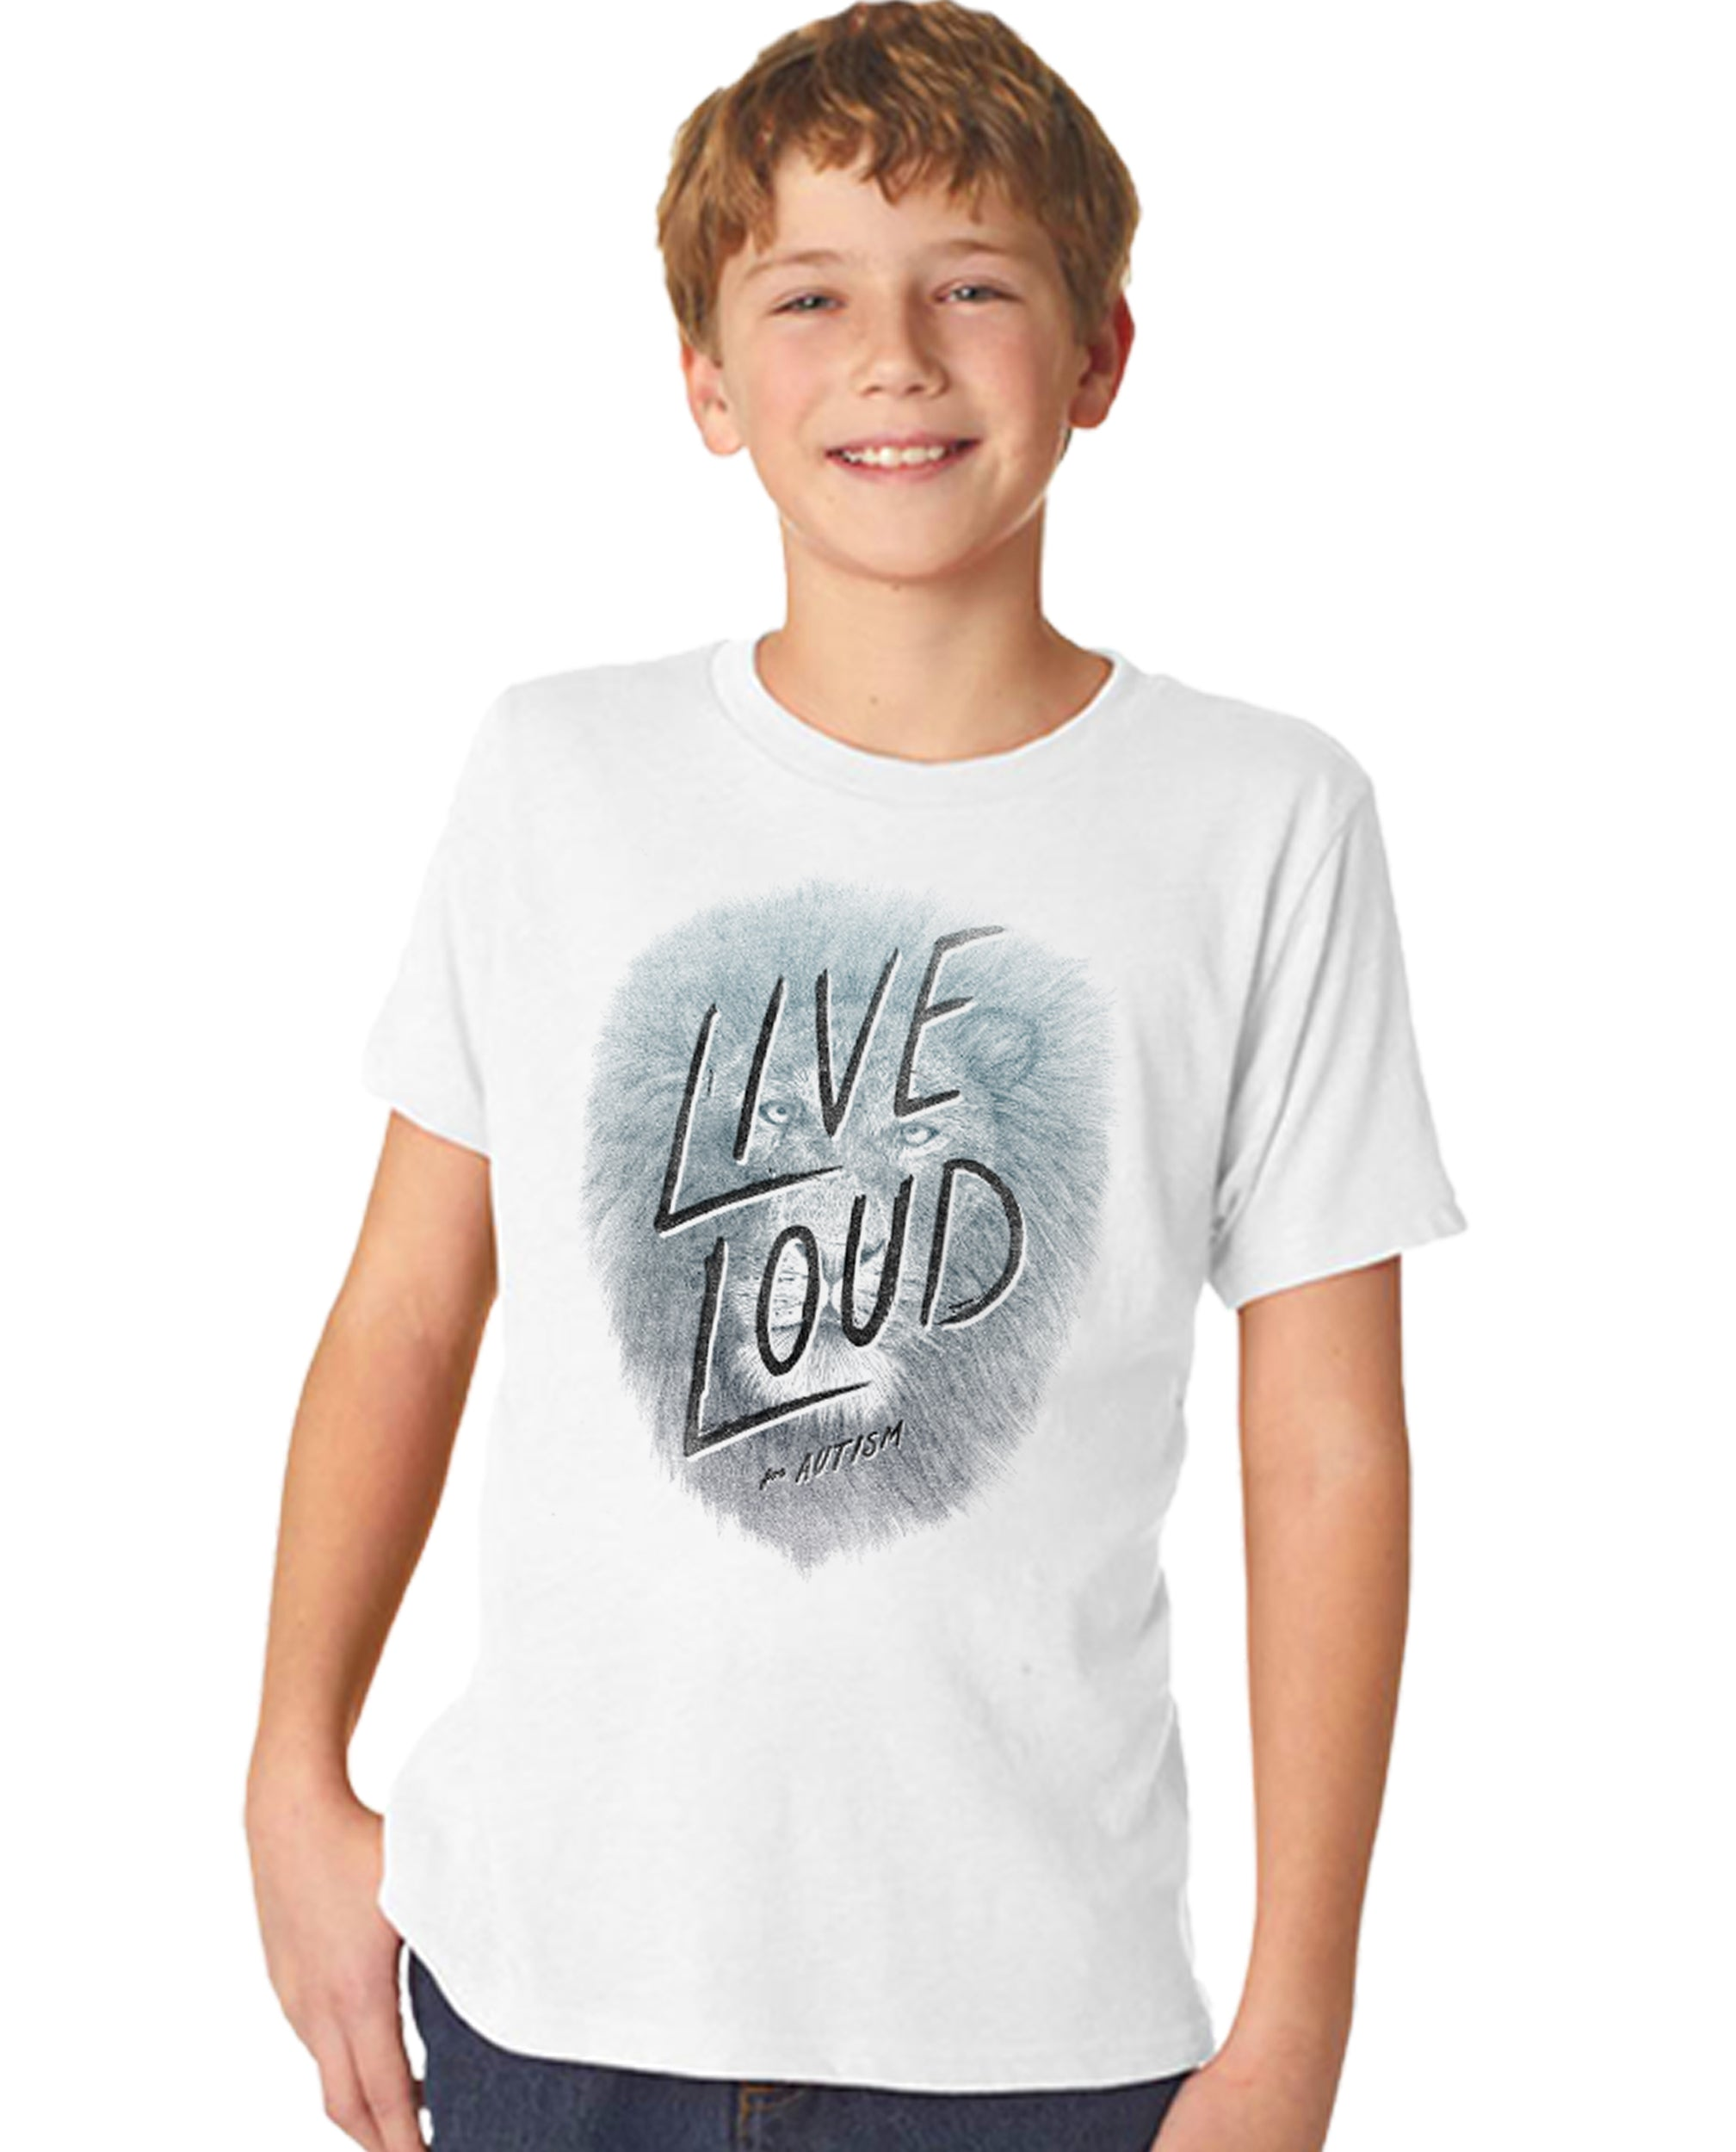 Live Loud Autism Lion Boy's Premium Short Sleeve Crew